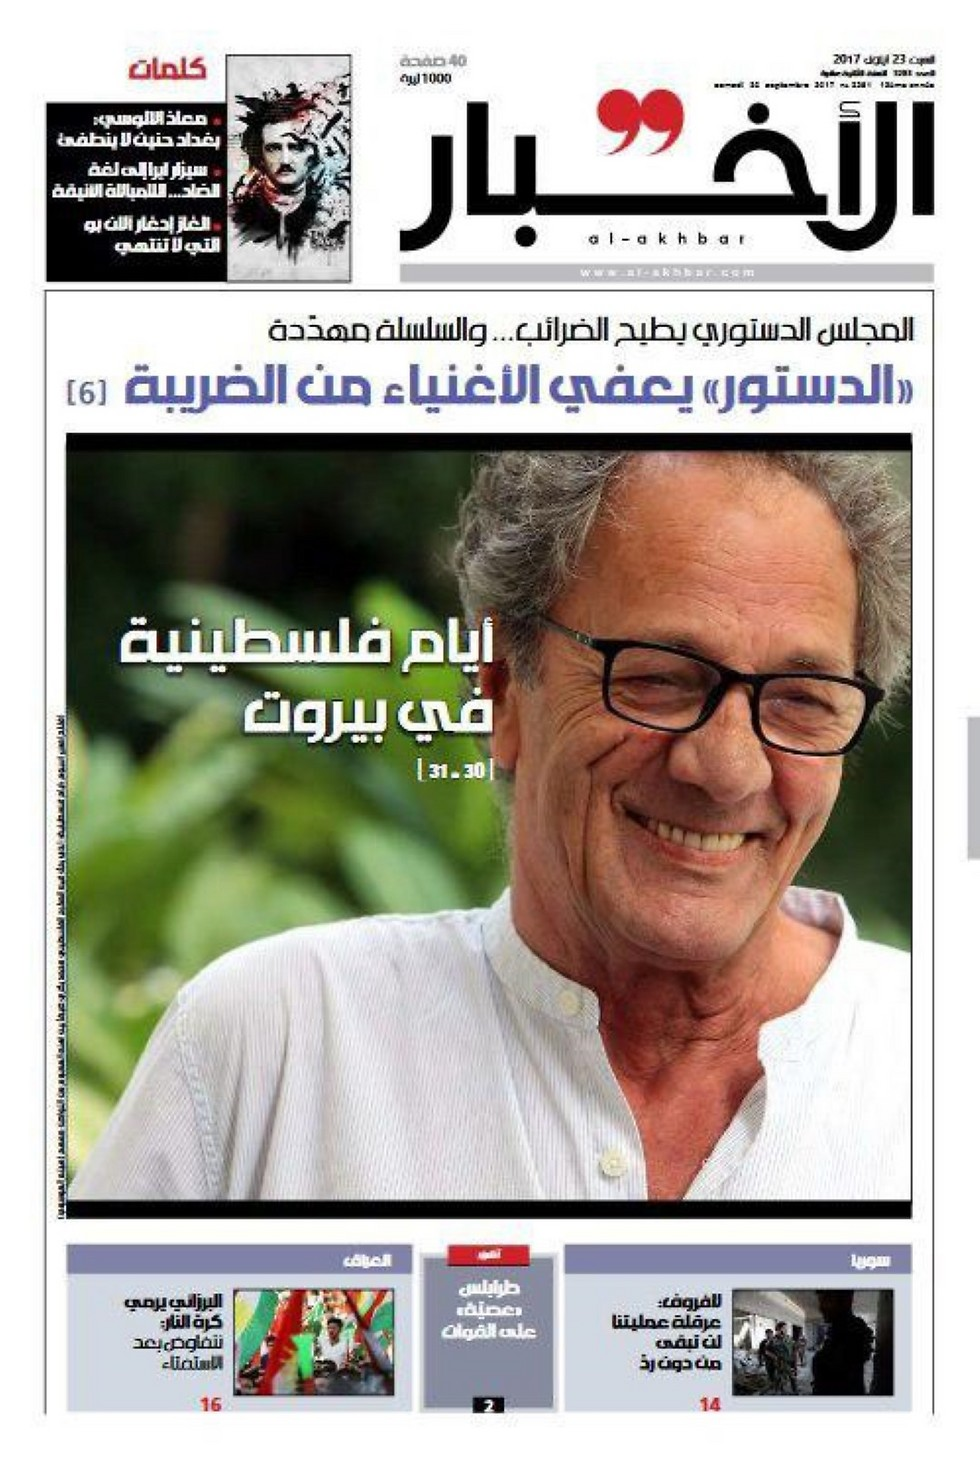 Bakri on the cover of Hezbollah-affiliated newspaper Al-Akhbar. 'Normalization with the Zionist enemy is treason'